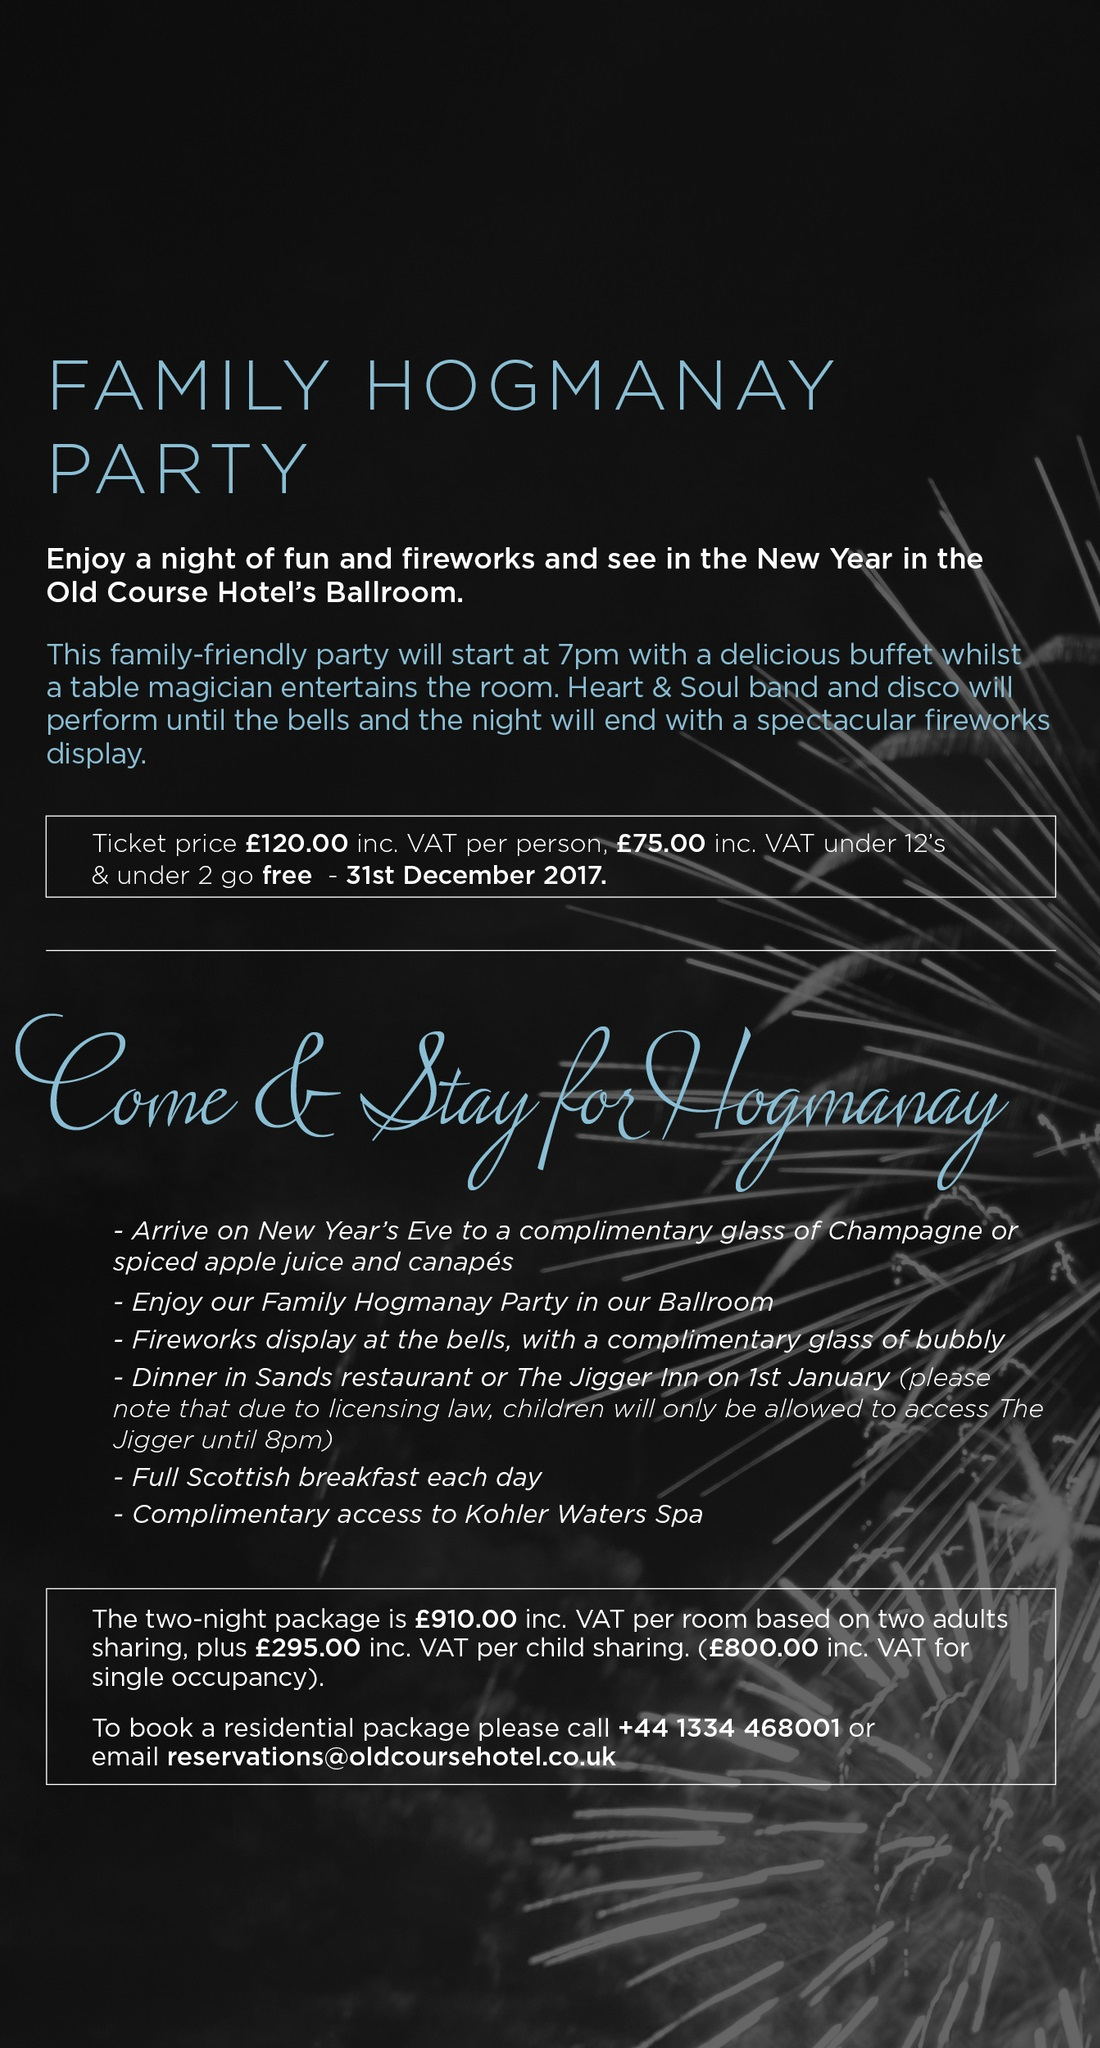 FAMILY HOGMANAY PARTY. ENjoy a night of fun and fireworks and see in the New Year in the Old Course Hotel's Ballroom. This family-friendly party will start at 7pm with a delicious buffet whilst a table magician entertains the room. Heart & Soul band and disco will perform until the bells and the night will end with a spectacular fireworks display. Ticket price £120.00 inc. VAT per person, £75.00 inc. VAT under 12's & under 2 go free - 31st December 2017. COME & STAY FOR HOGMANAY. Arrive on New Year's Eve to a complimentary glass of Champagne or spiced apple juice and canapes. Enjoy our Family Hogmanay Party in our Ballroom. Fireworks display at the bells, with a glass of bubbly. Dinner in Sands restaurant or at The Jigger Inn on 1st January (please note that due to licensing law, children will only be allowed to access The Jigger until 8pm). Full Scottish breakfast each day. Complimentary access to Kohler Waters Spa. The two-night package is £910.00 inc. VAT per room based on two adults sharing, plus £295.00 inc. VAT per child sharing. (£800.00 inc. VAT for single occupancy). To book a residential package please call +44 1334 468001 or email reservations@oldcoursehotel.co.uk